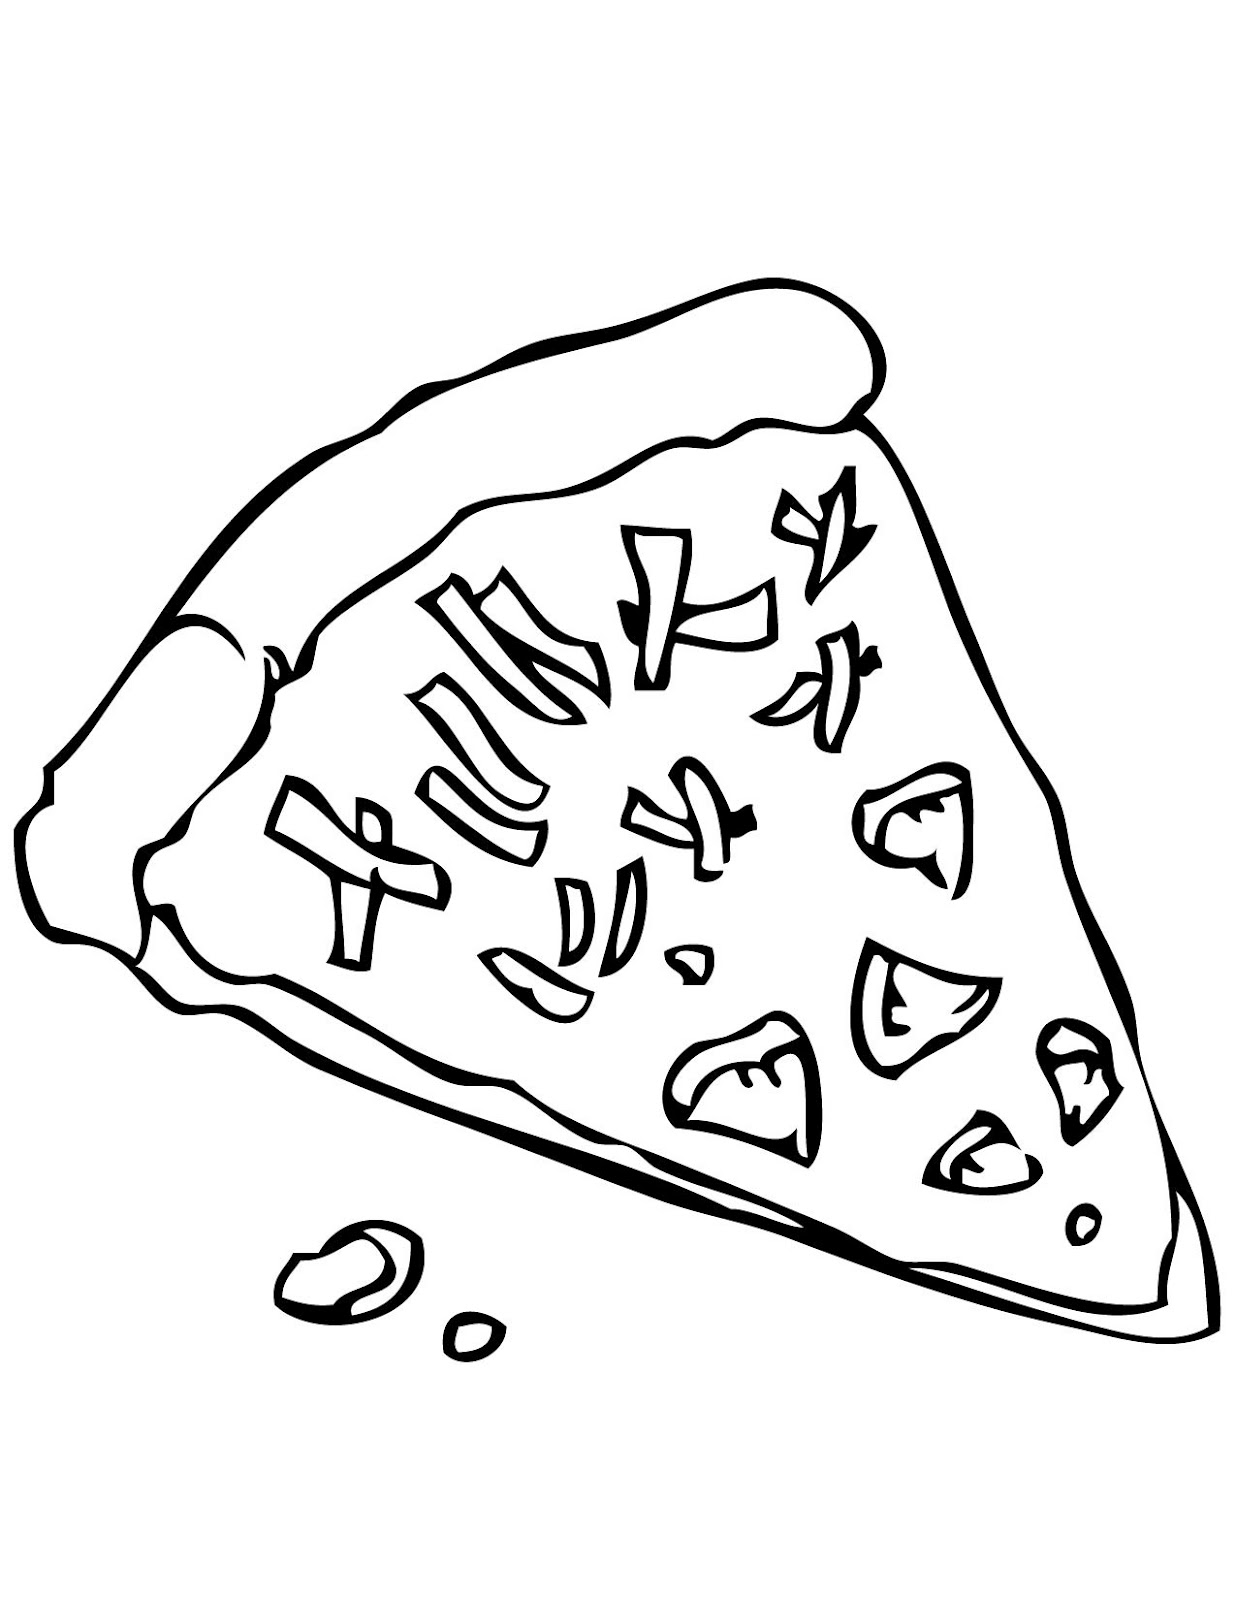 how to draw a cite pizza